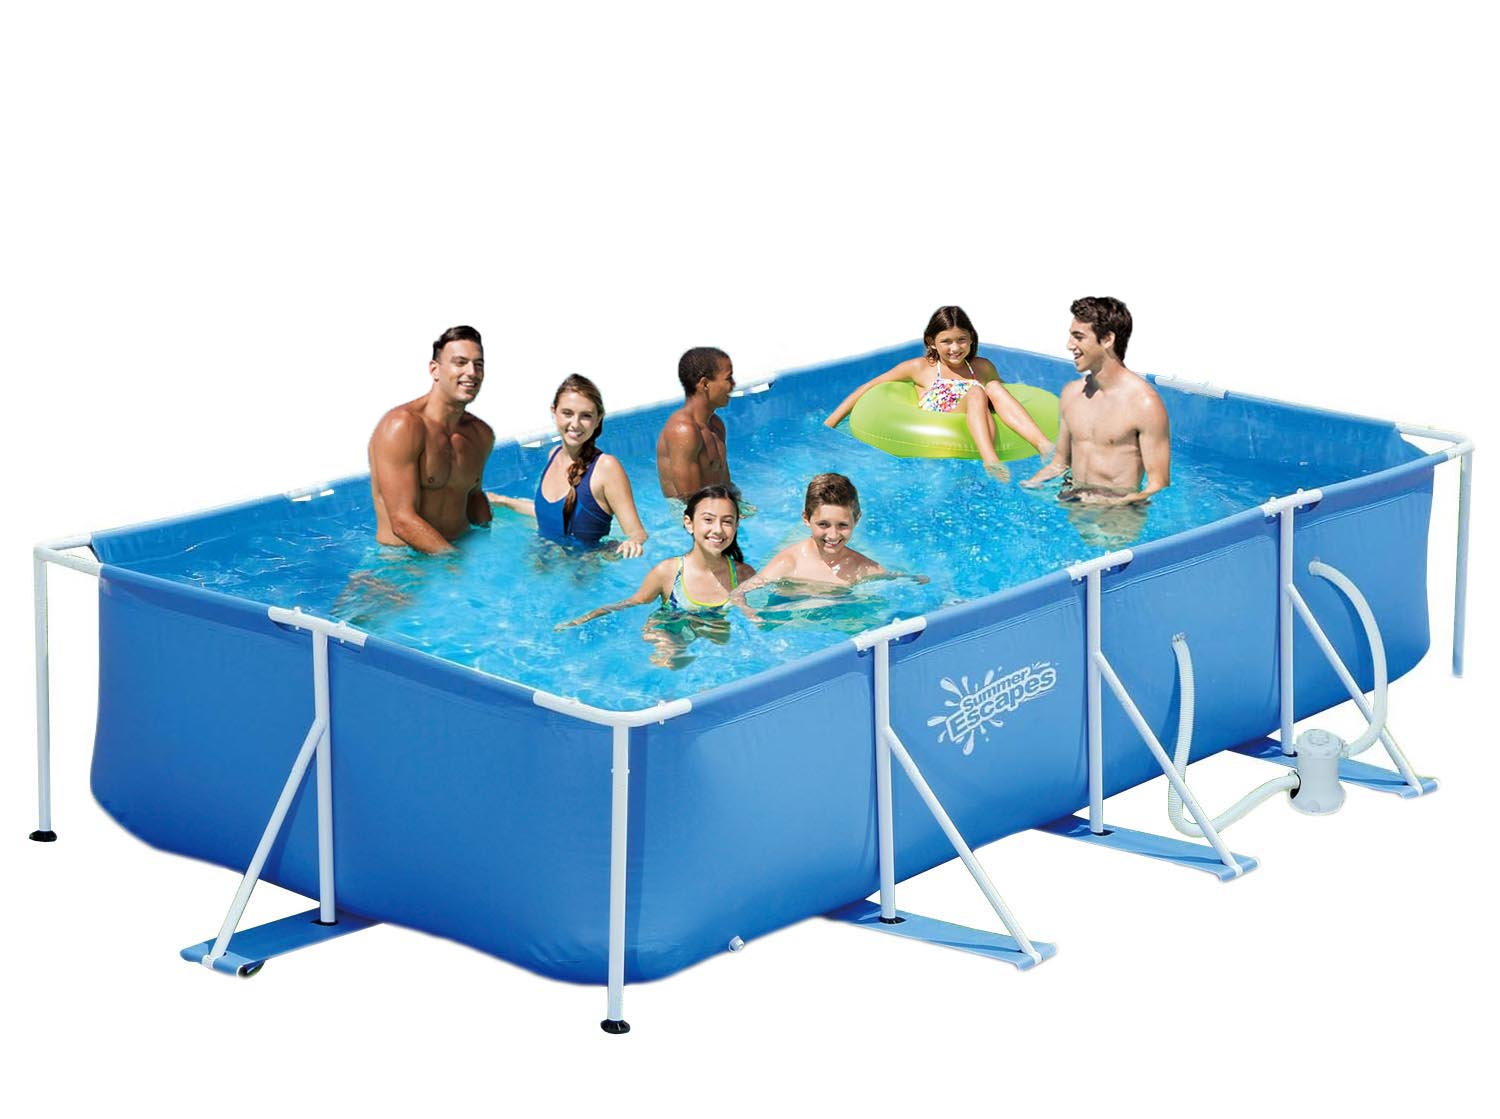 Filterpumpe Pool Entleeren Summer Escapes Frame Pool 427x244x91cm Rahmen Swimming Pool Familien Schwimmbad